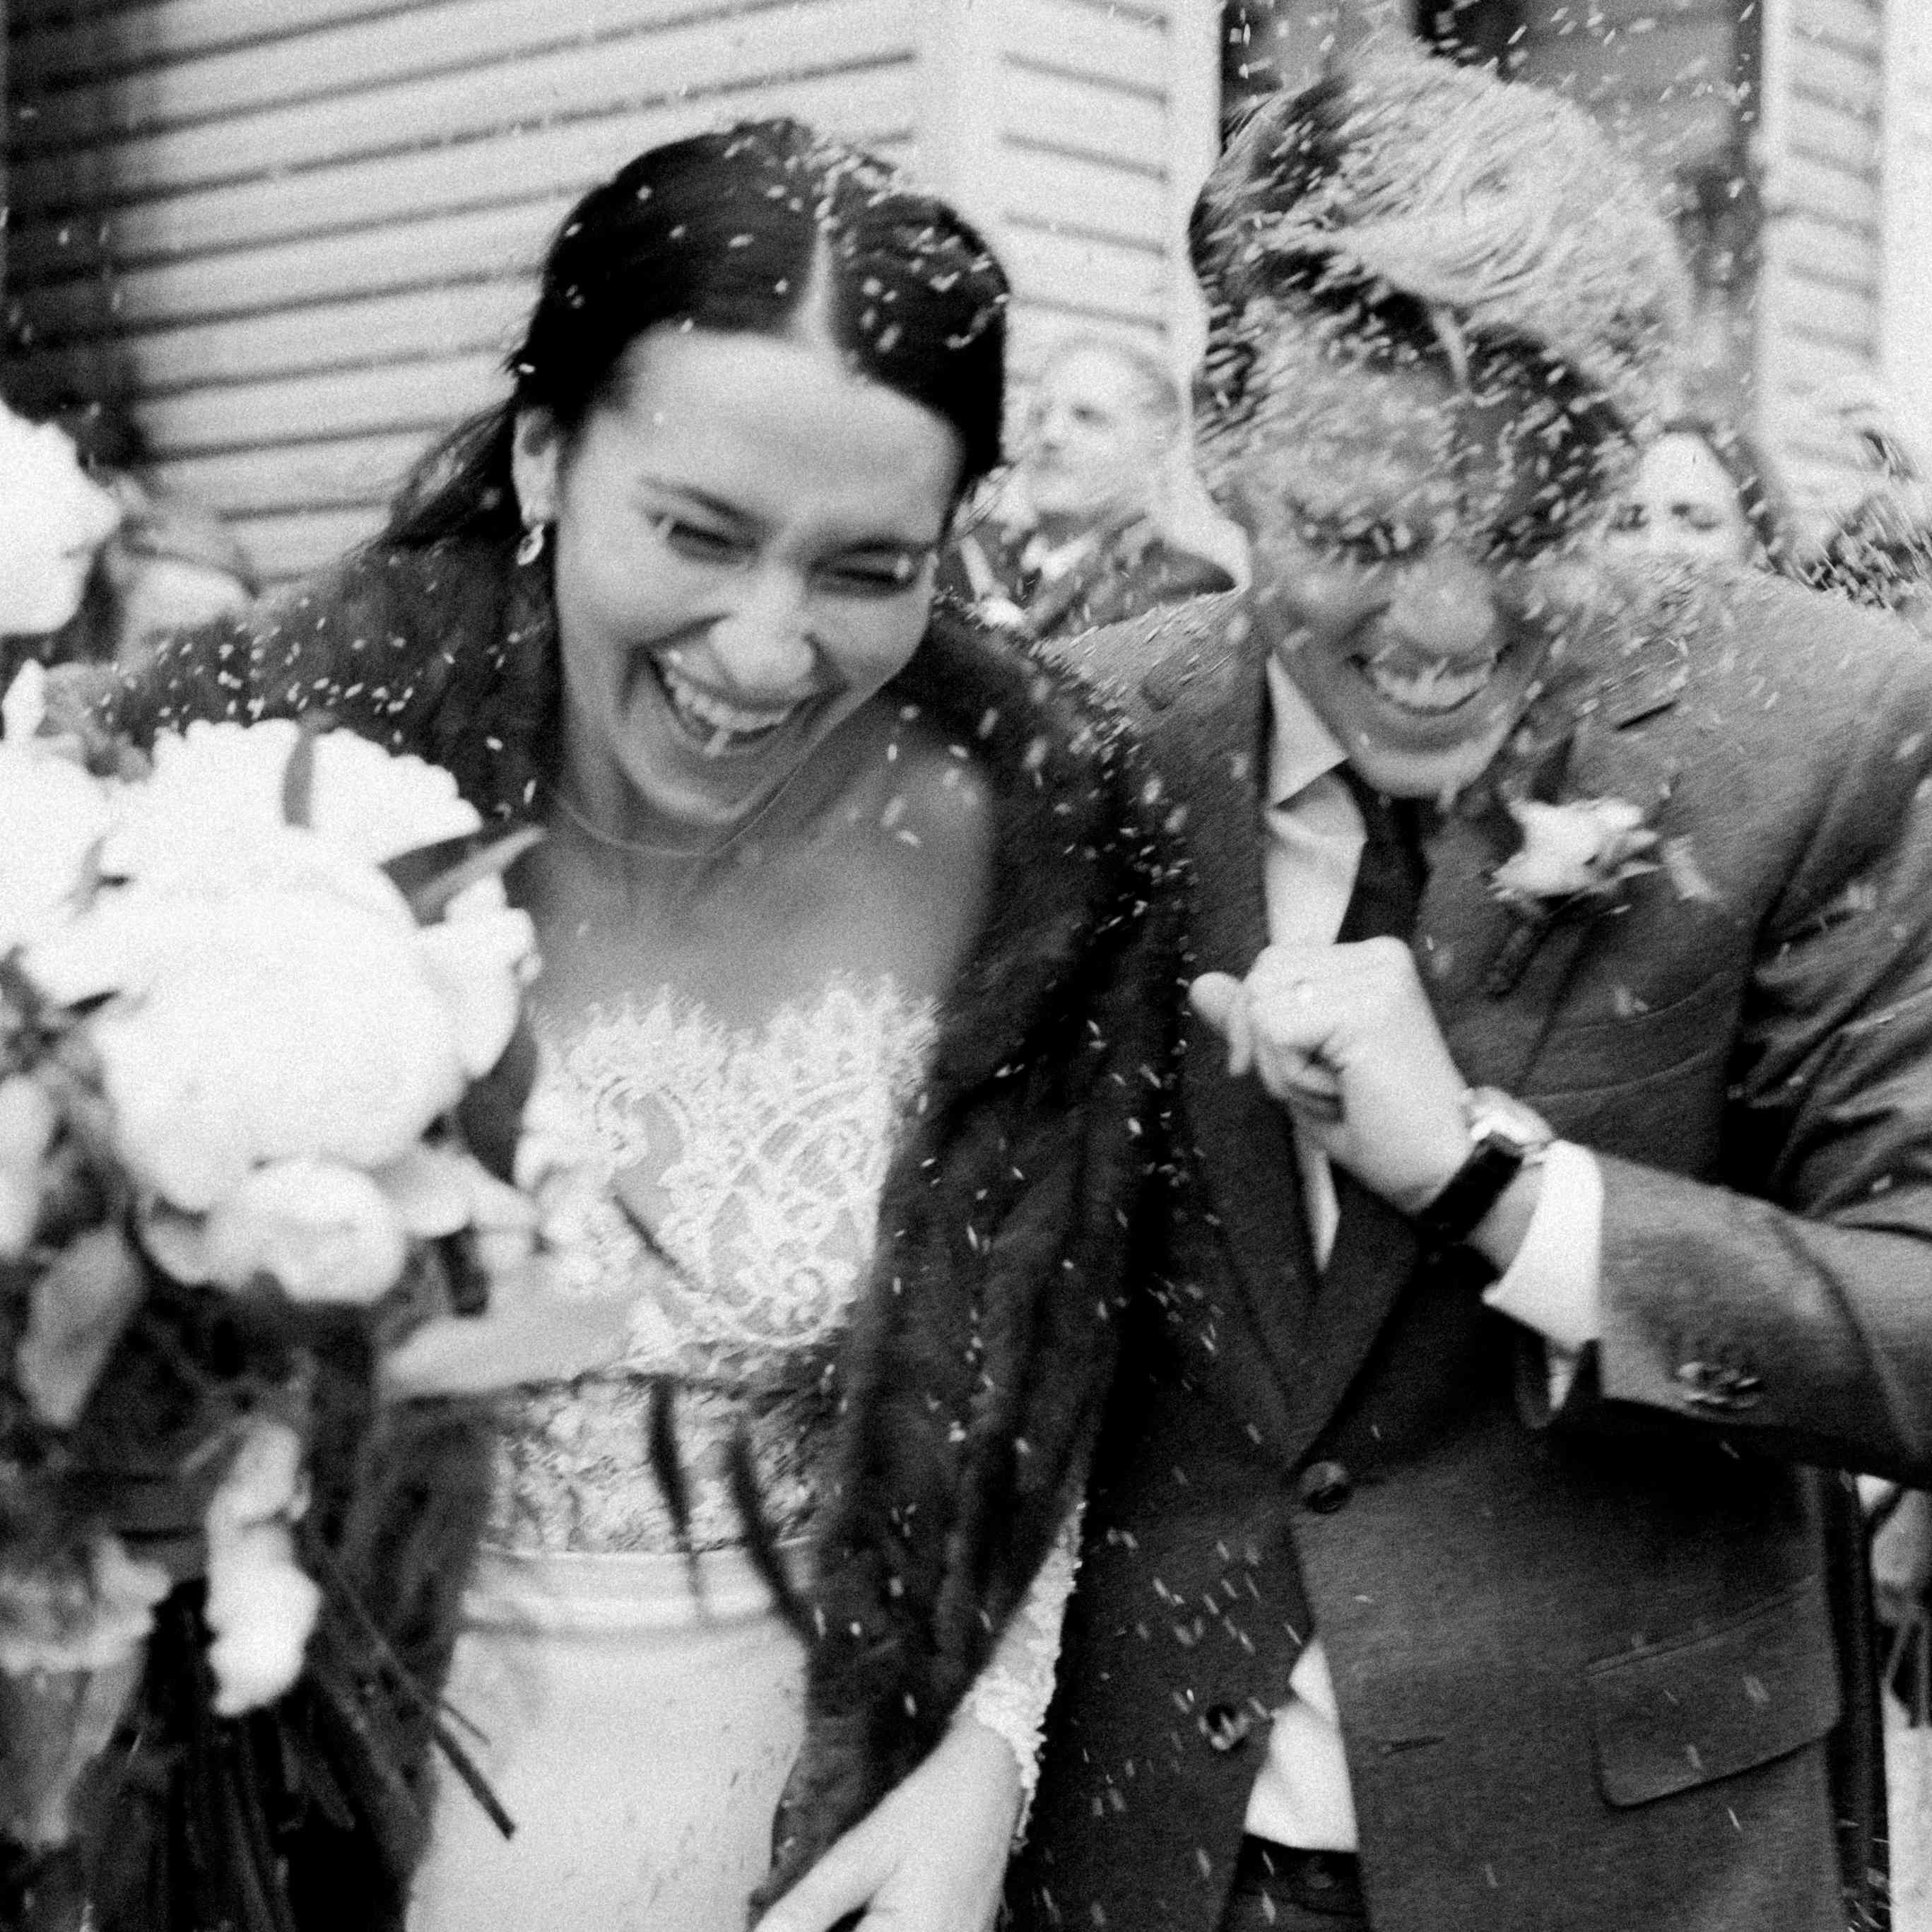 Bride and groom under rice toss